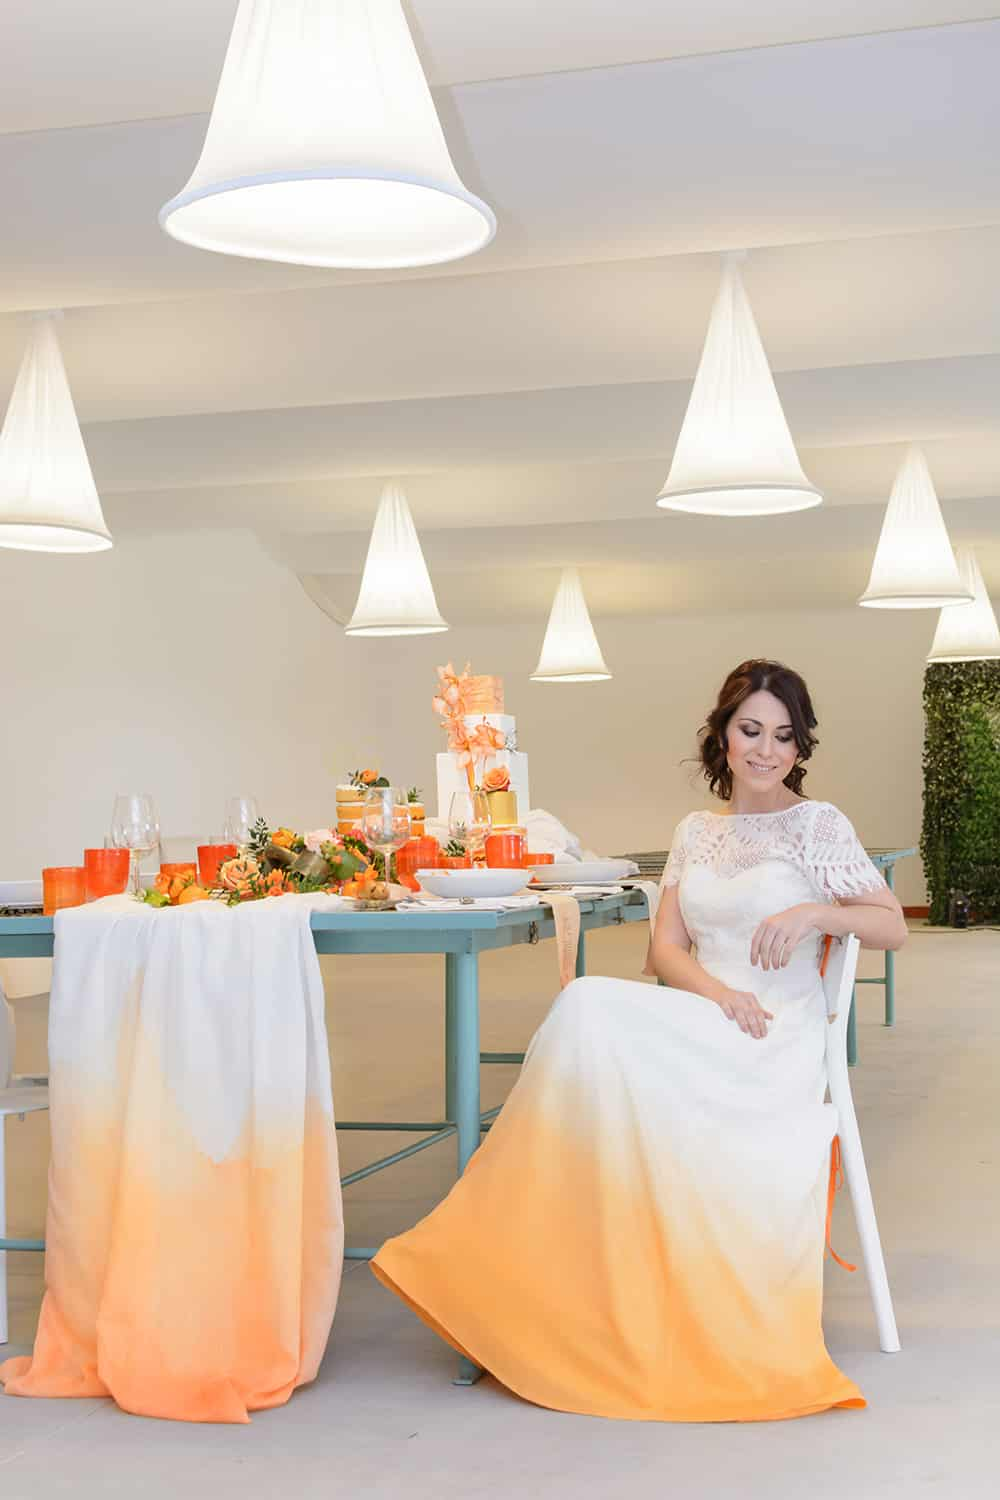 boda naranja novia sentada en la mesa de boda con efecto dip die en naranjas All you need is color